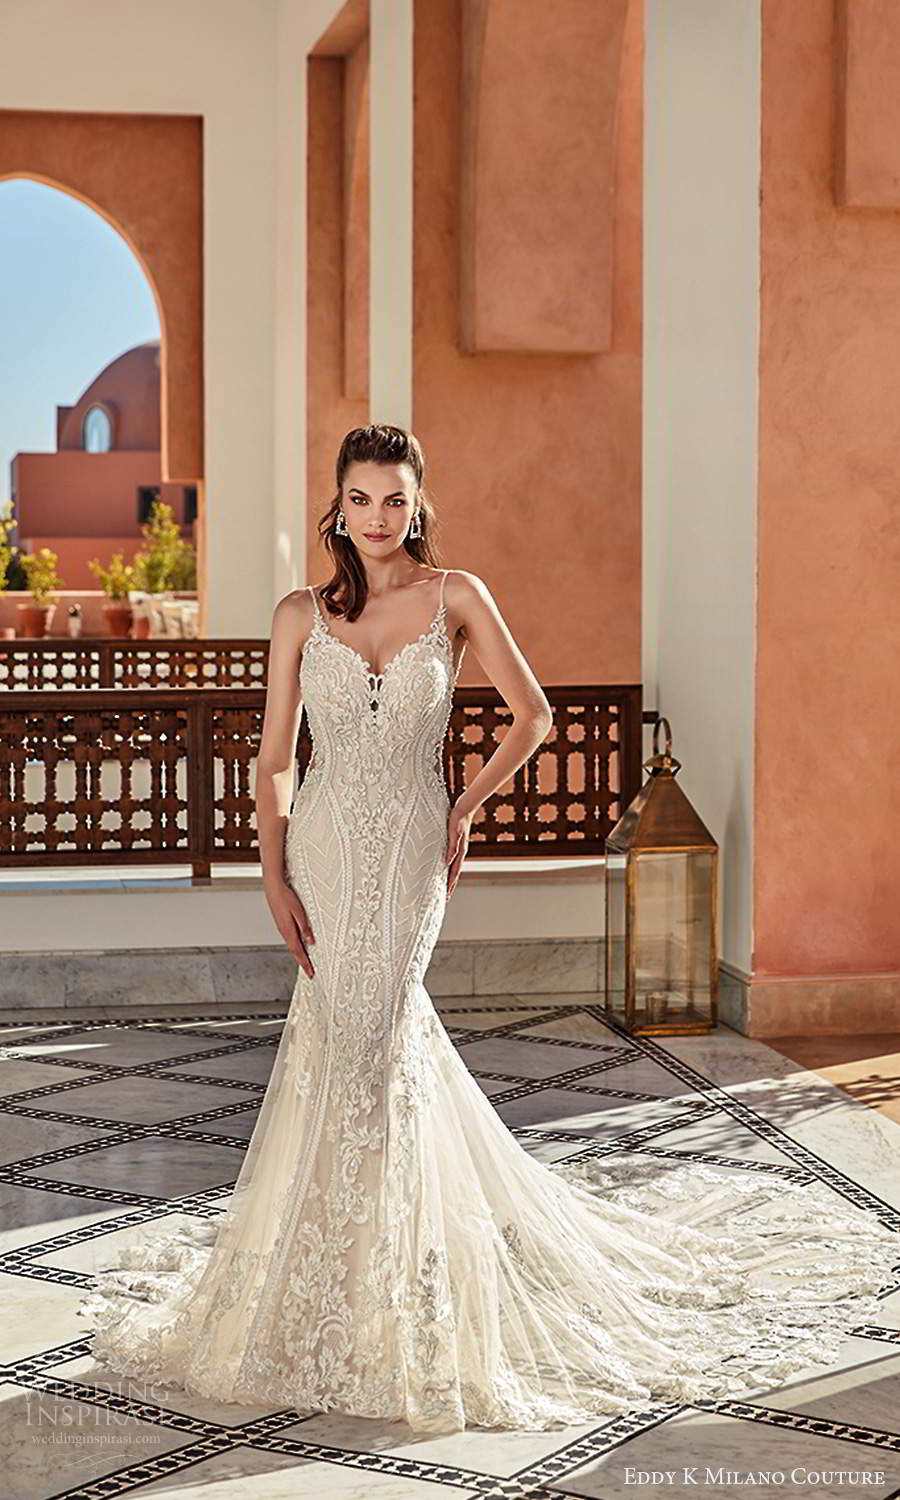 eddy k 2021 milano couture bridal sleeveless thin straps sweetheart neckline fully embellished sheath wedding dress chapel train (8) mv